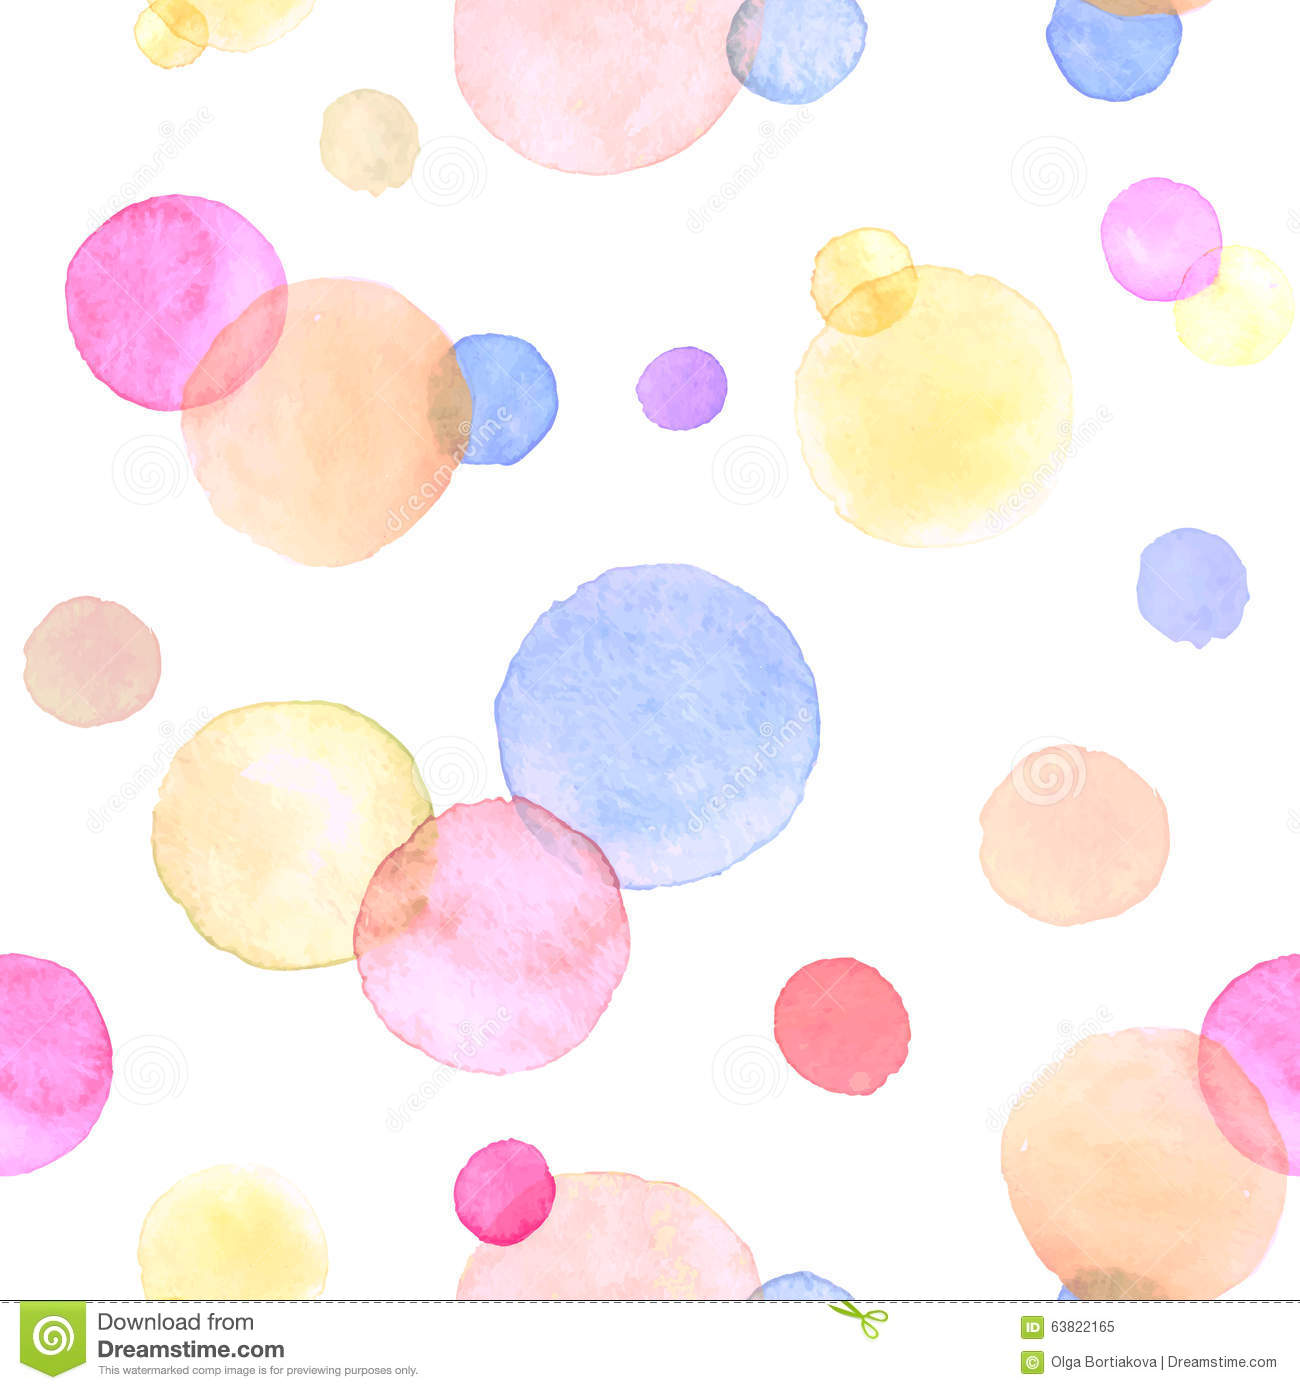 All 4u Hd Wallpaper Free Download Nail Art Designs: Watercolor Background Stock Vector. Illustration Of